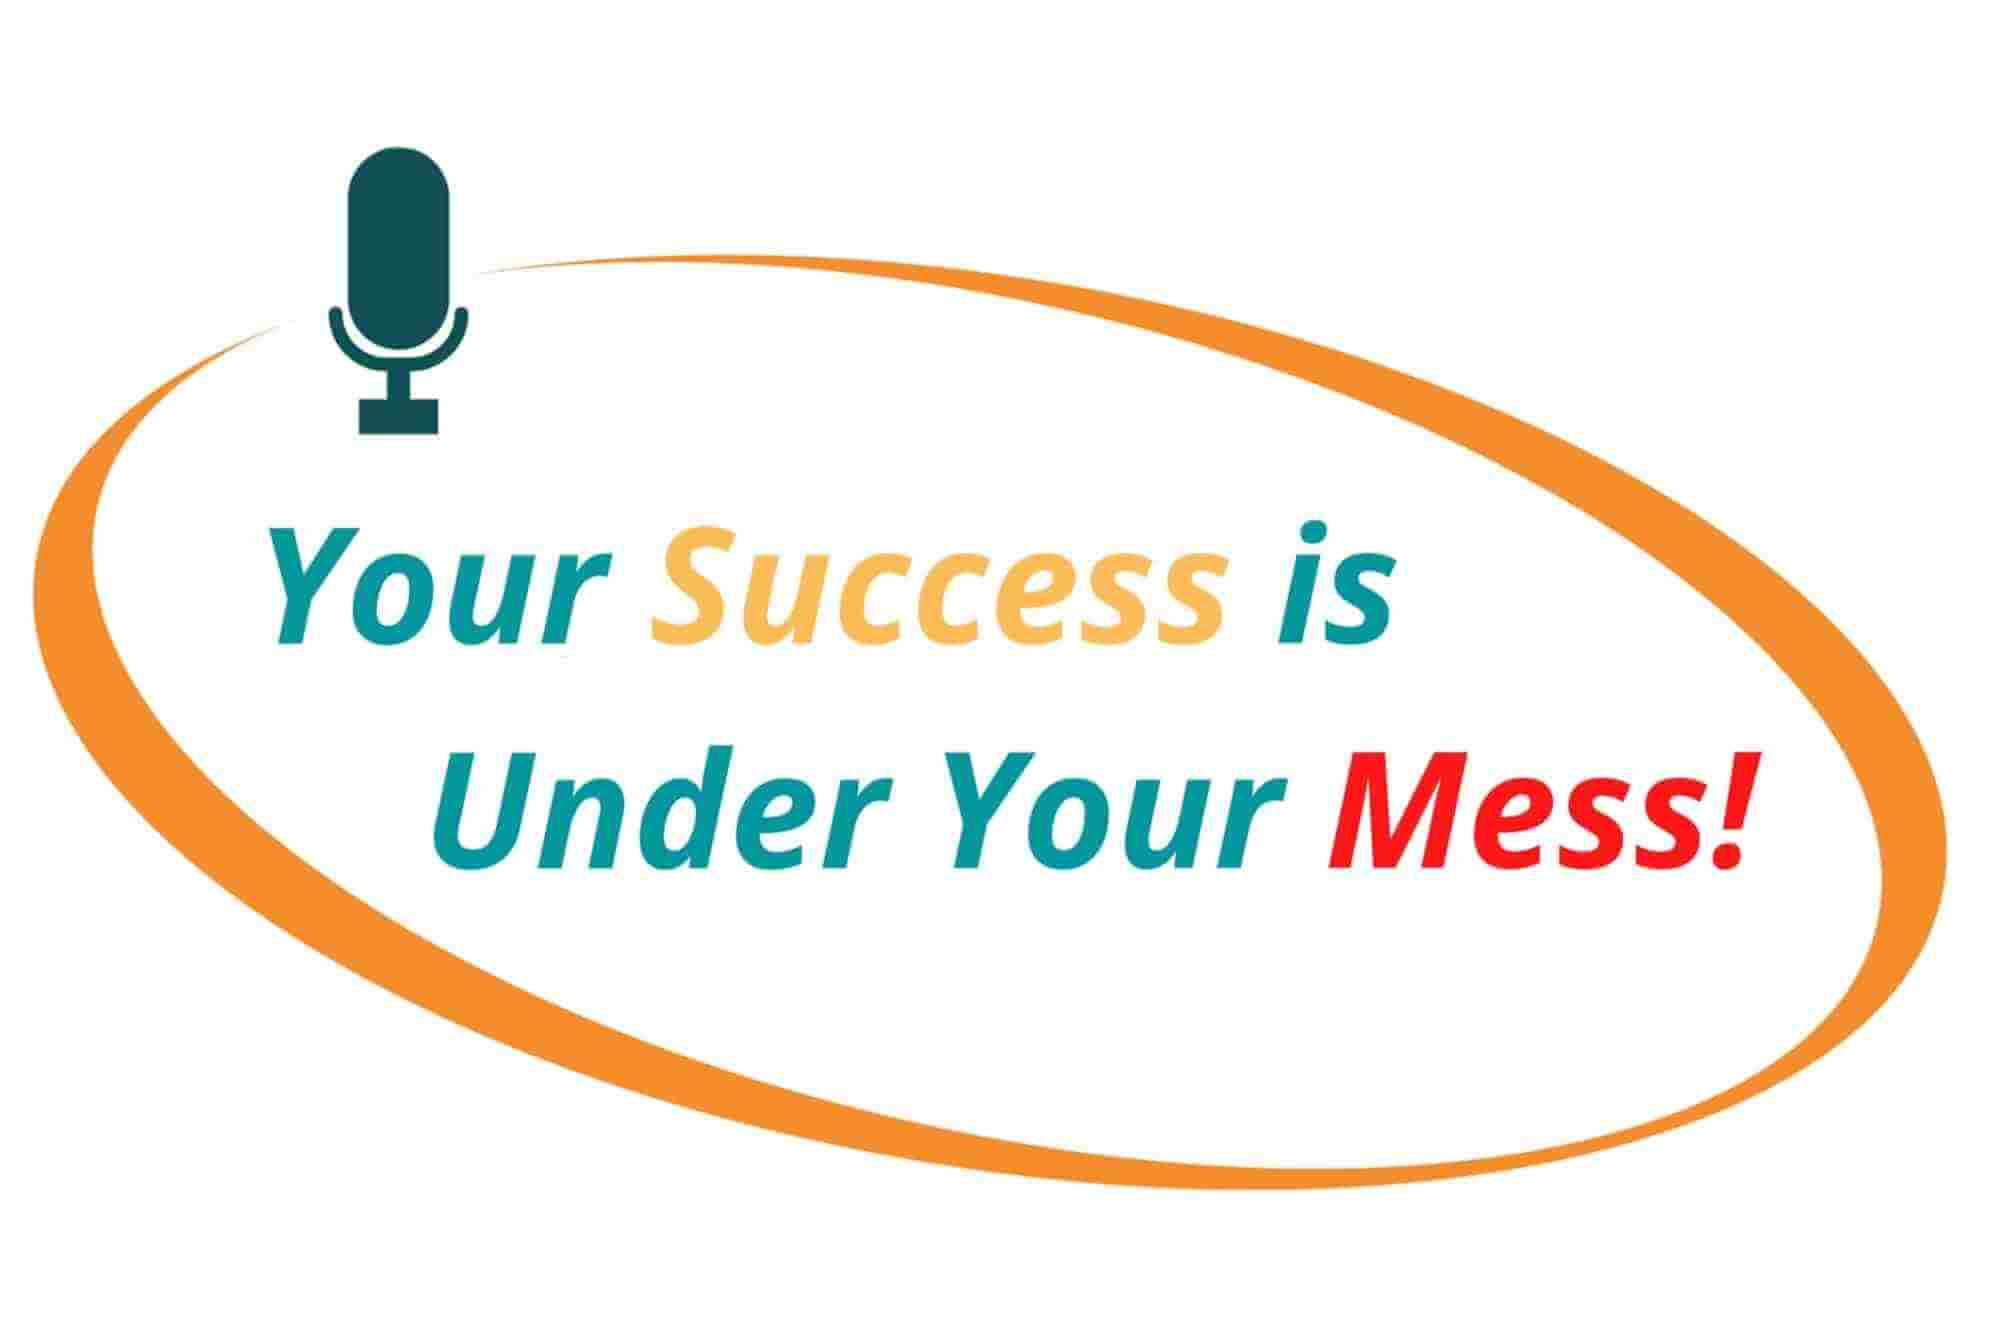 Your Success is Under Your Mess!